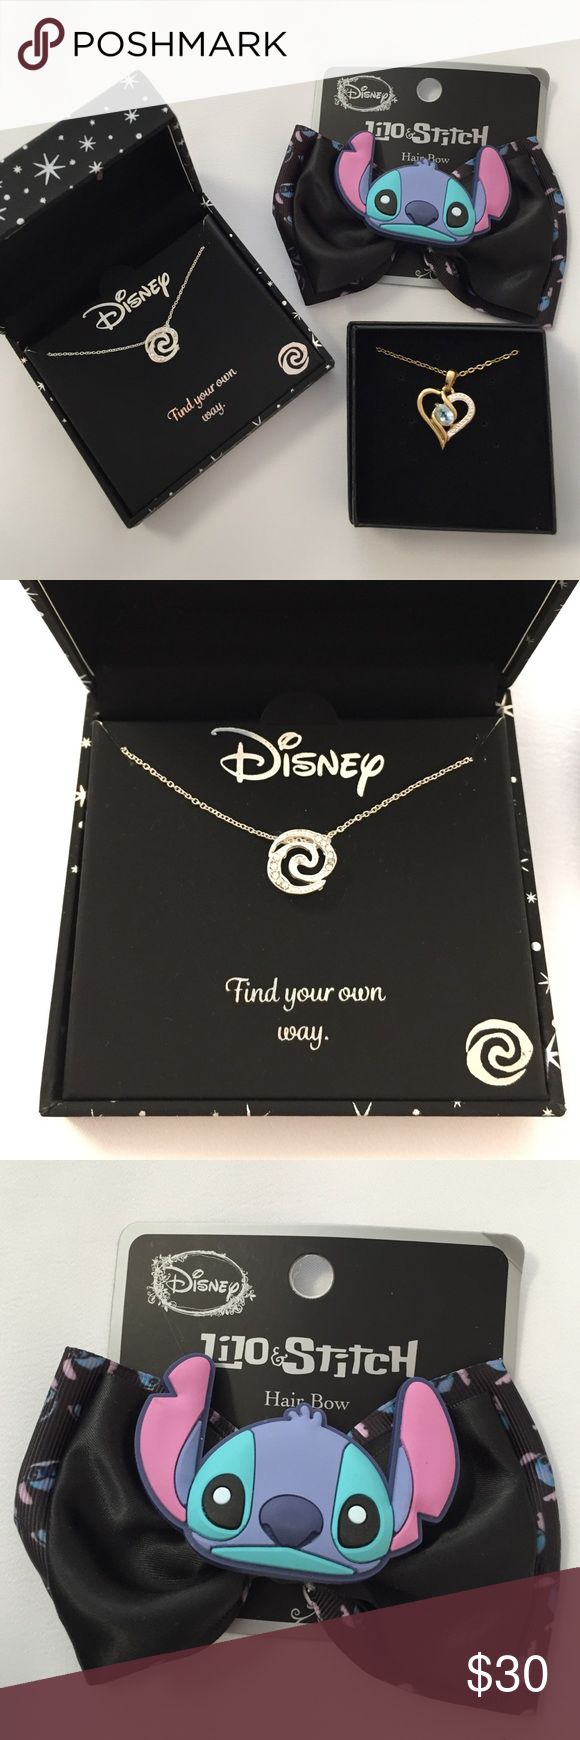 Disney Moana Necklace Unopened, brand new. Sorry I'm not sure how long the chain is since it's never been opened! Comes with a free Lilo and Stitch bow! Price is firm/no trades. Disney Jewelry Necklaces